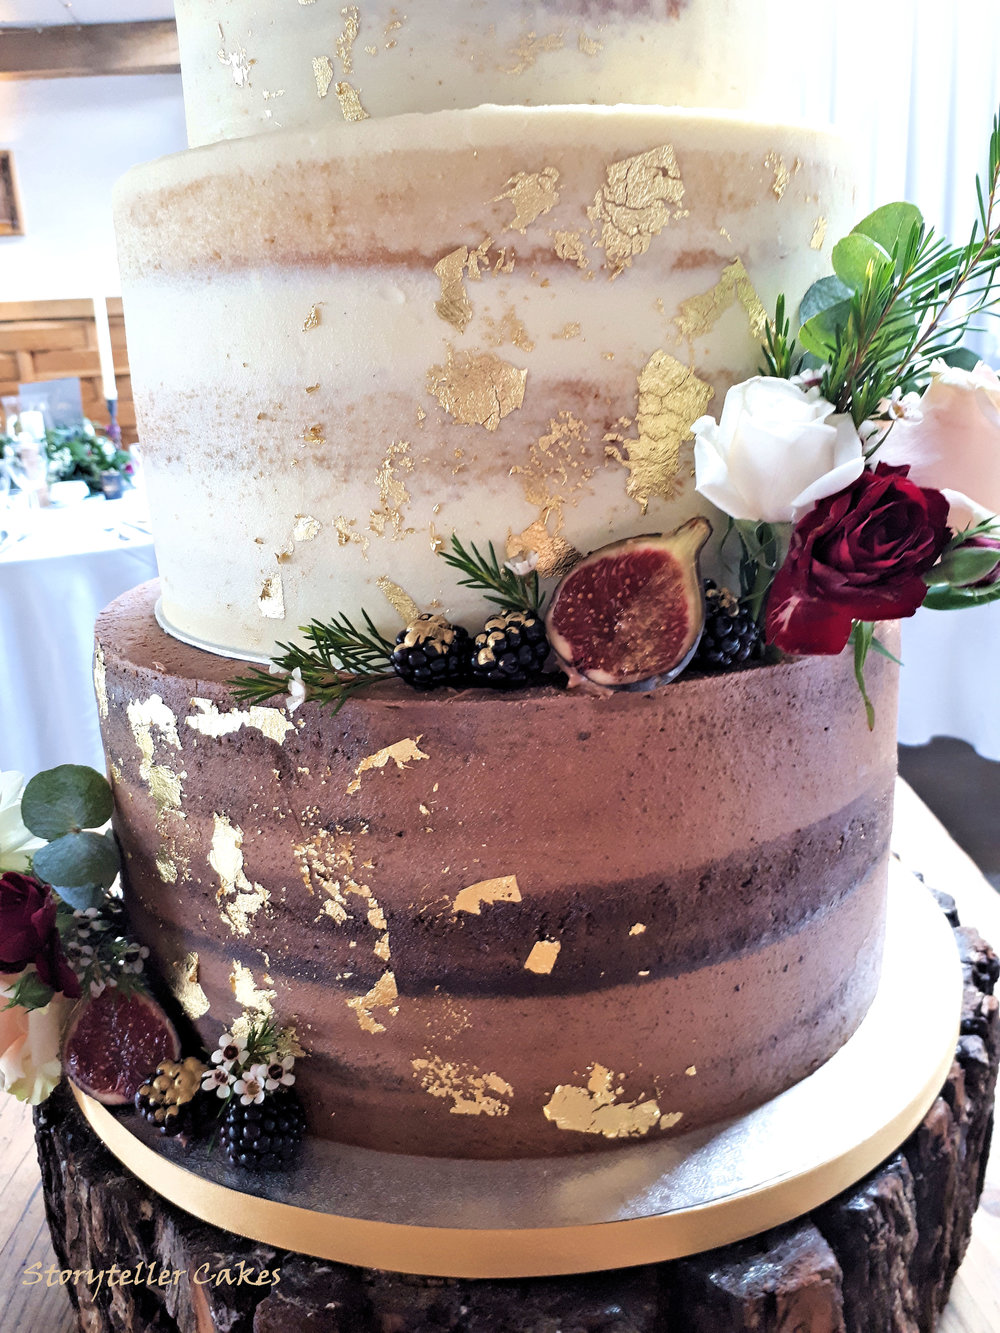 Autumnal Semi Naked gold cake with fresh flowers and fruits3.jpg